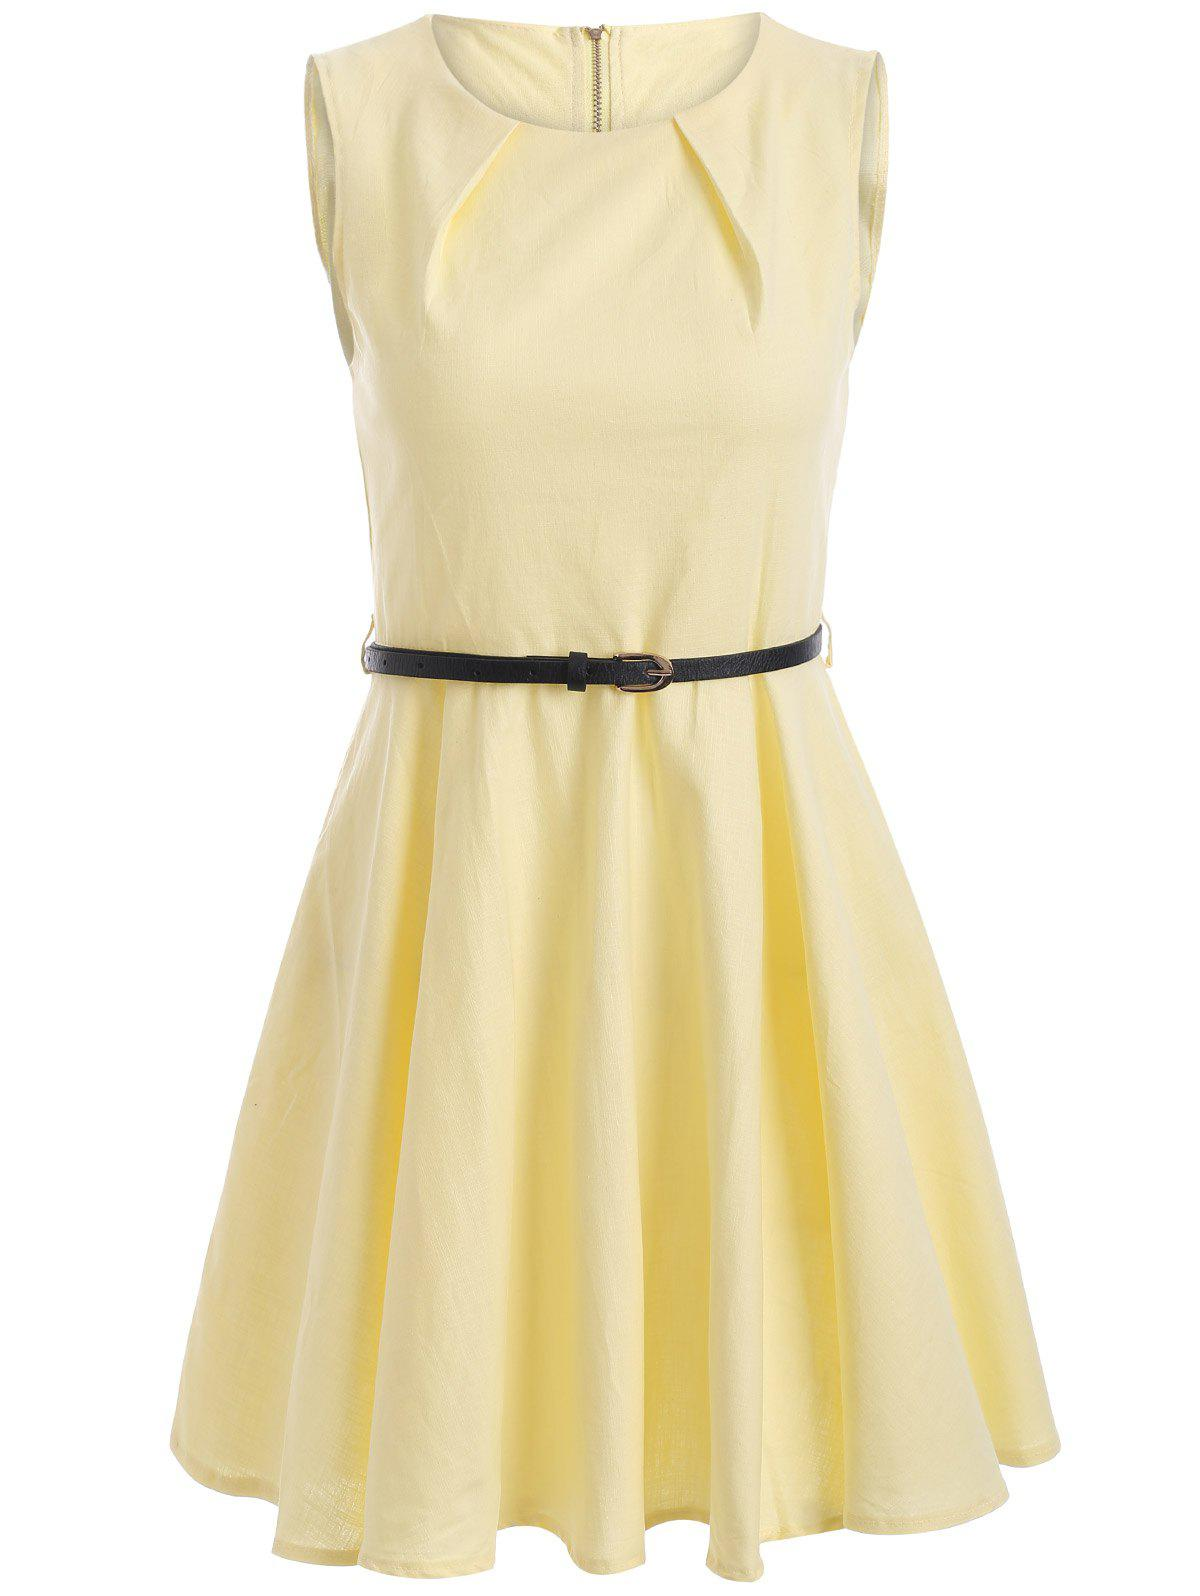 Sleeveless Solid Color Flare Dress - LIGHT YELLOW M